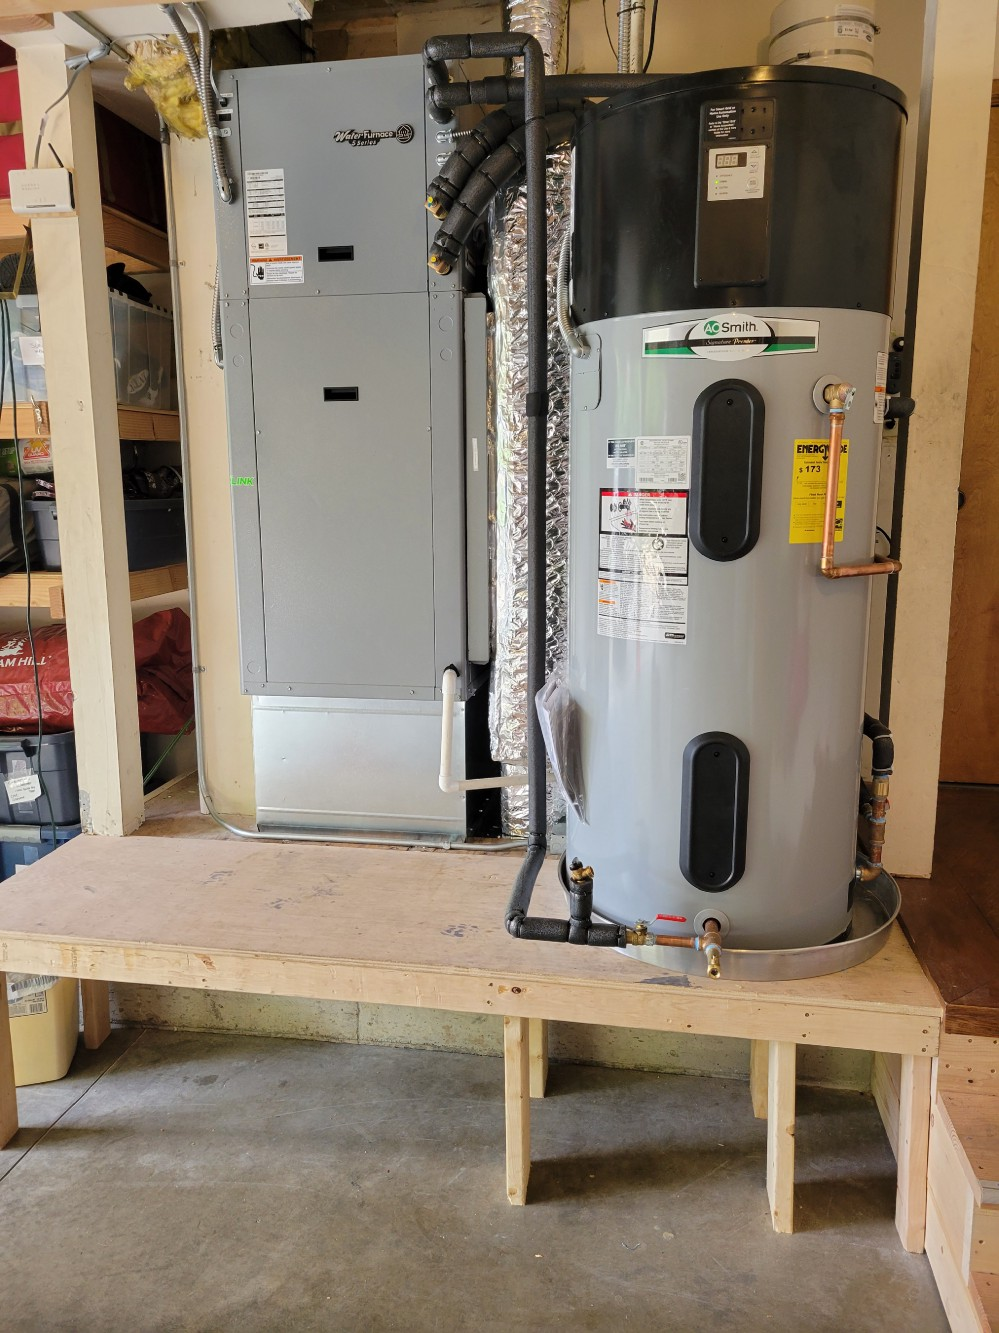 The new heat pump and hybrid heat pump hot water heater, installed and running.